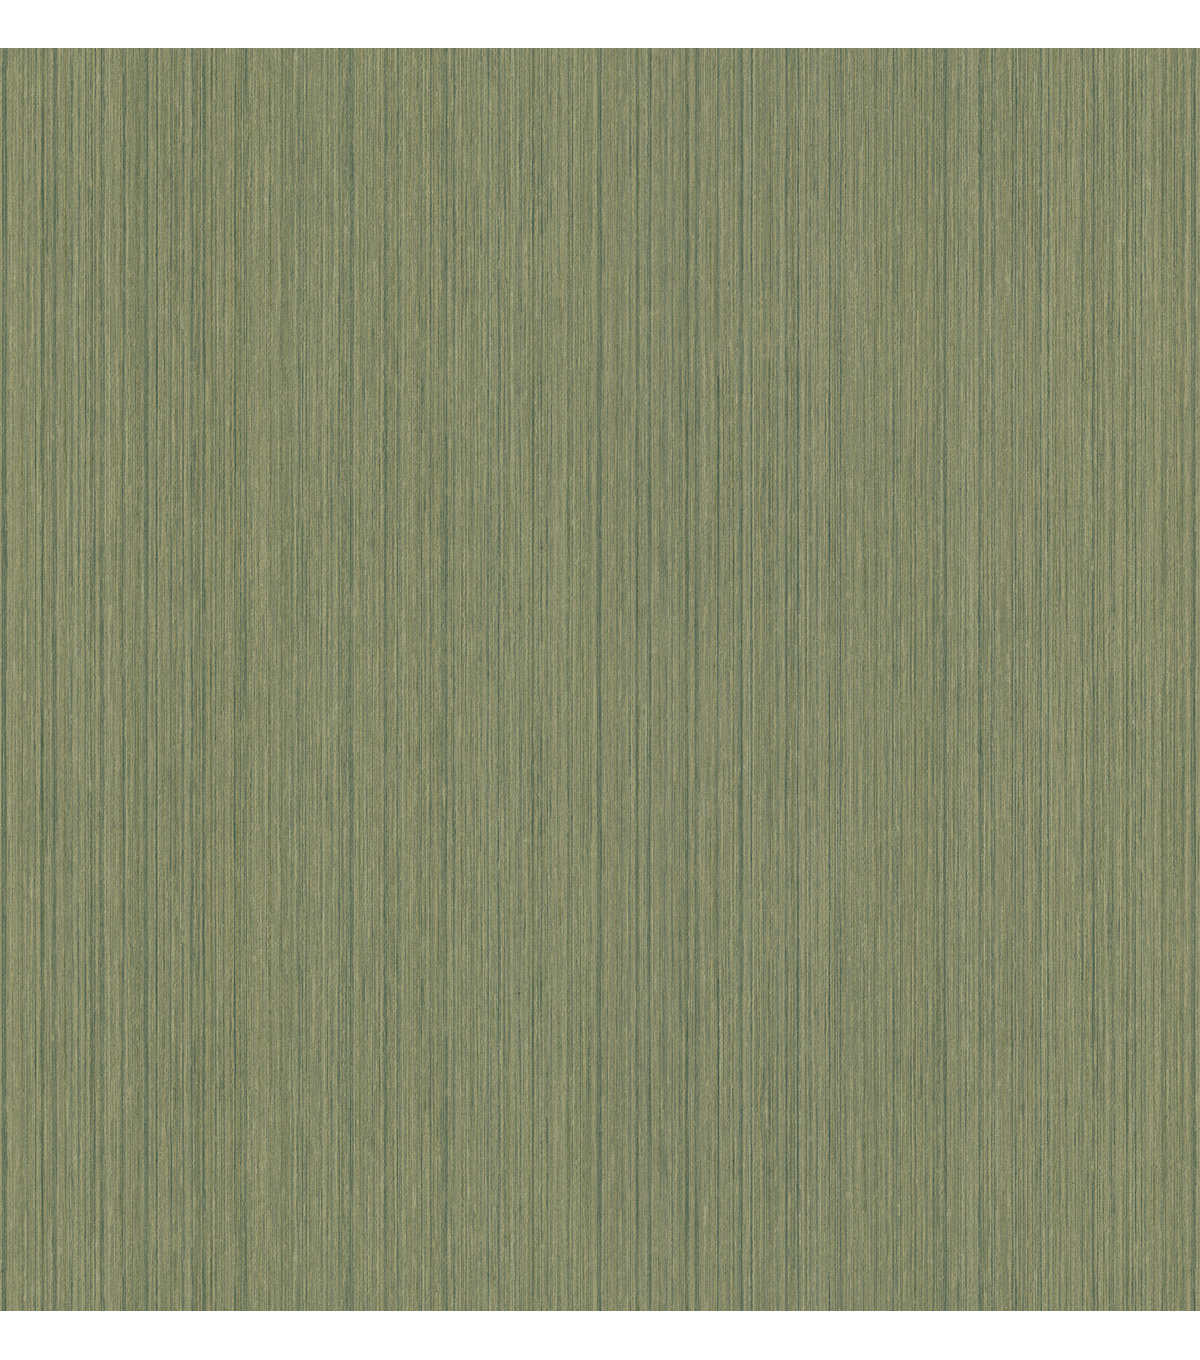 Sarto Green String Texture Wallpaper